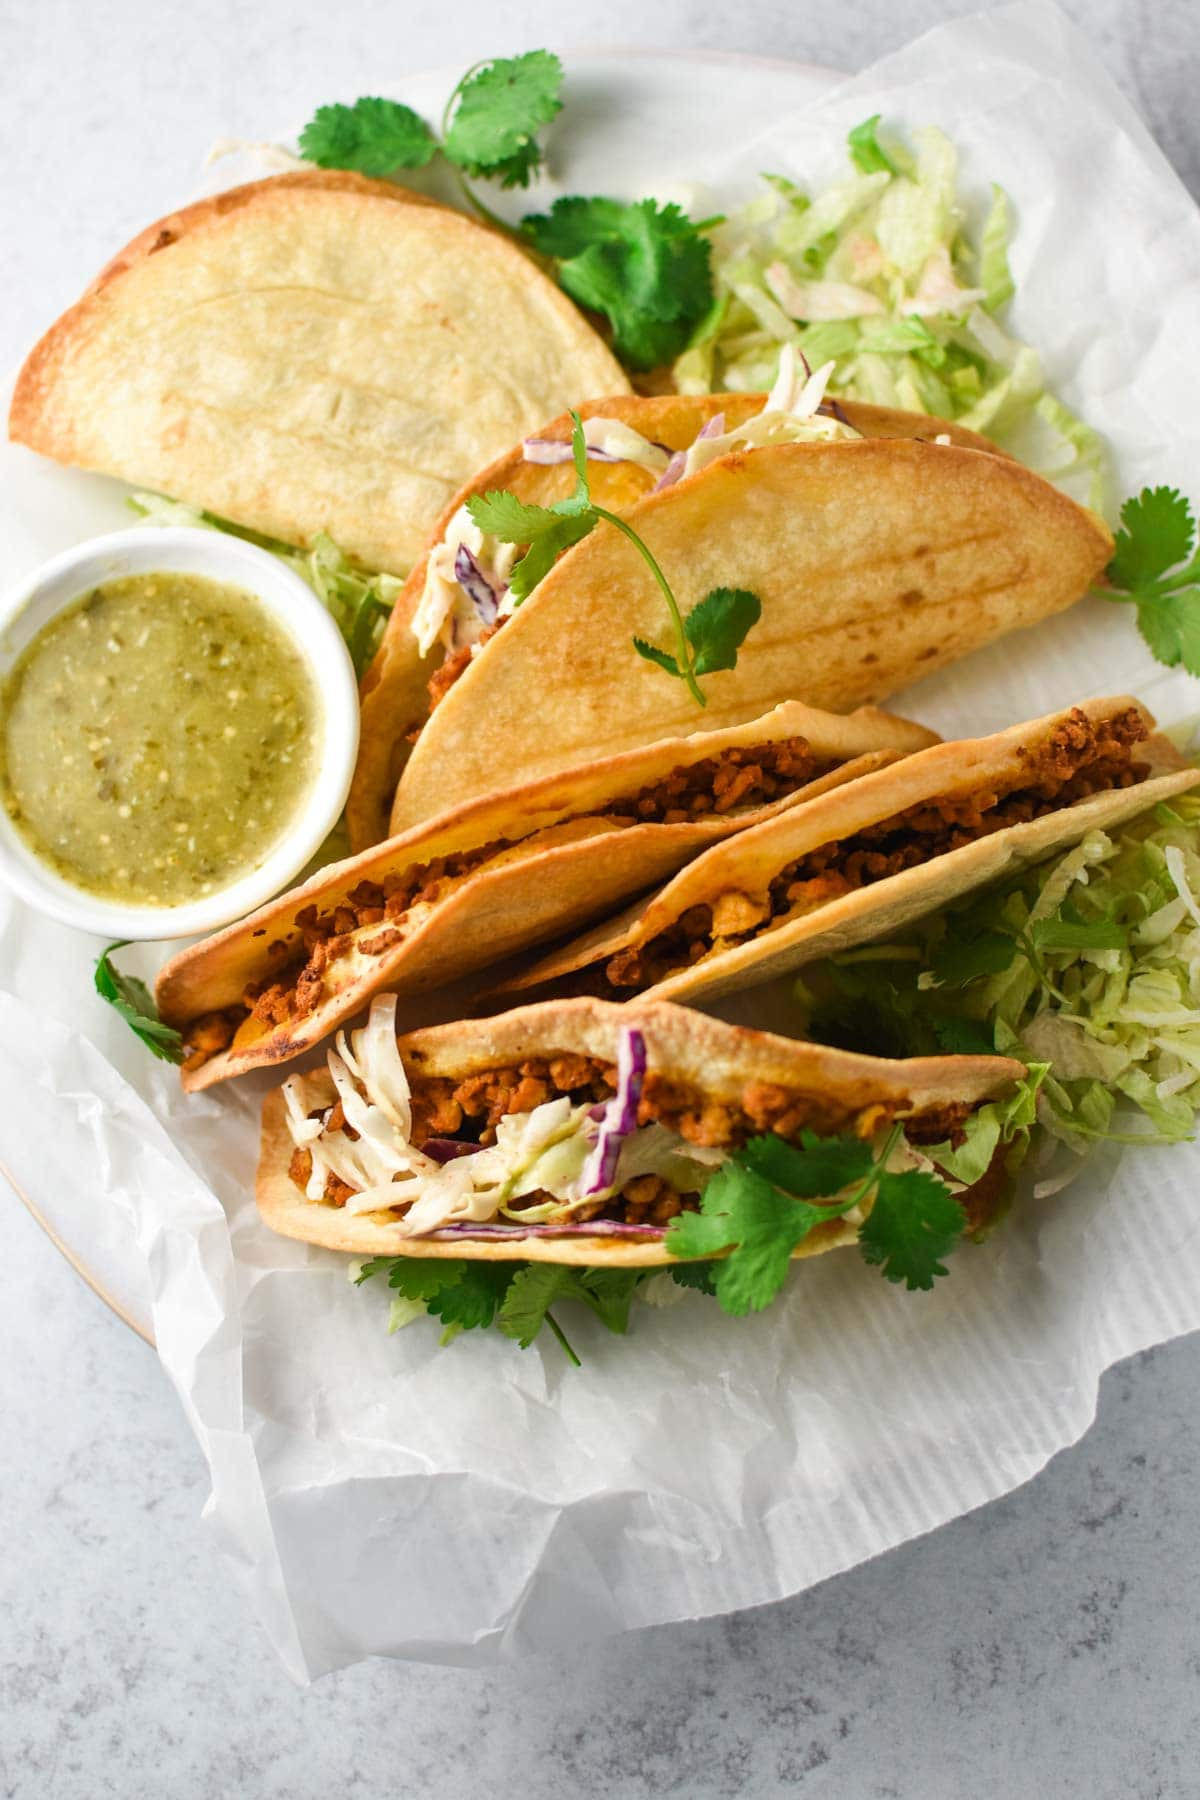 A row of crispy baked tacos on a platter with parchment paper